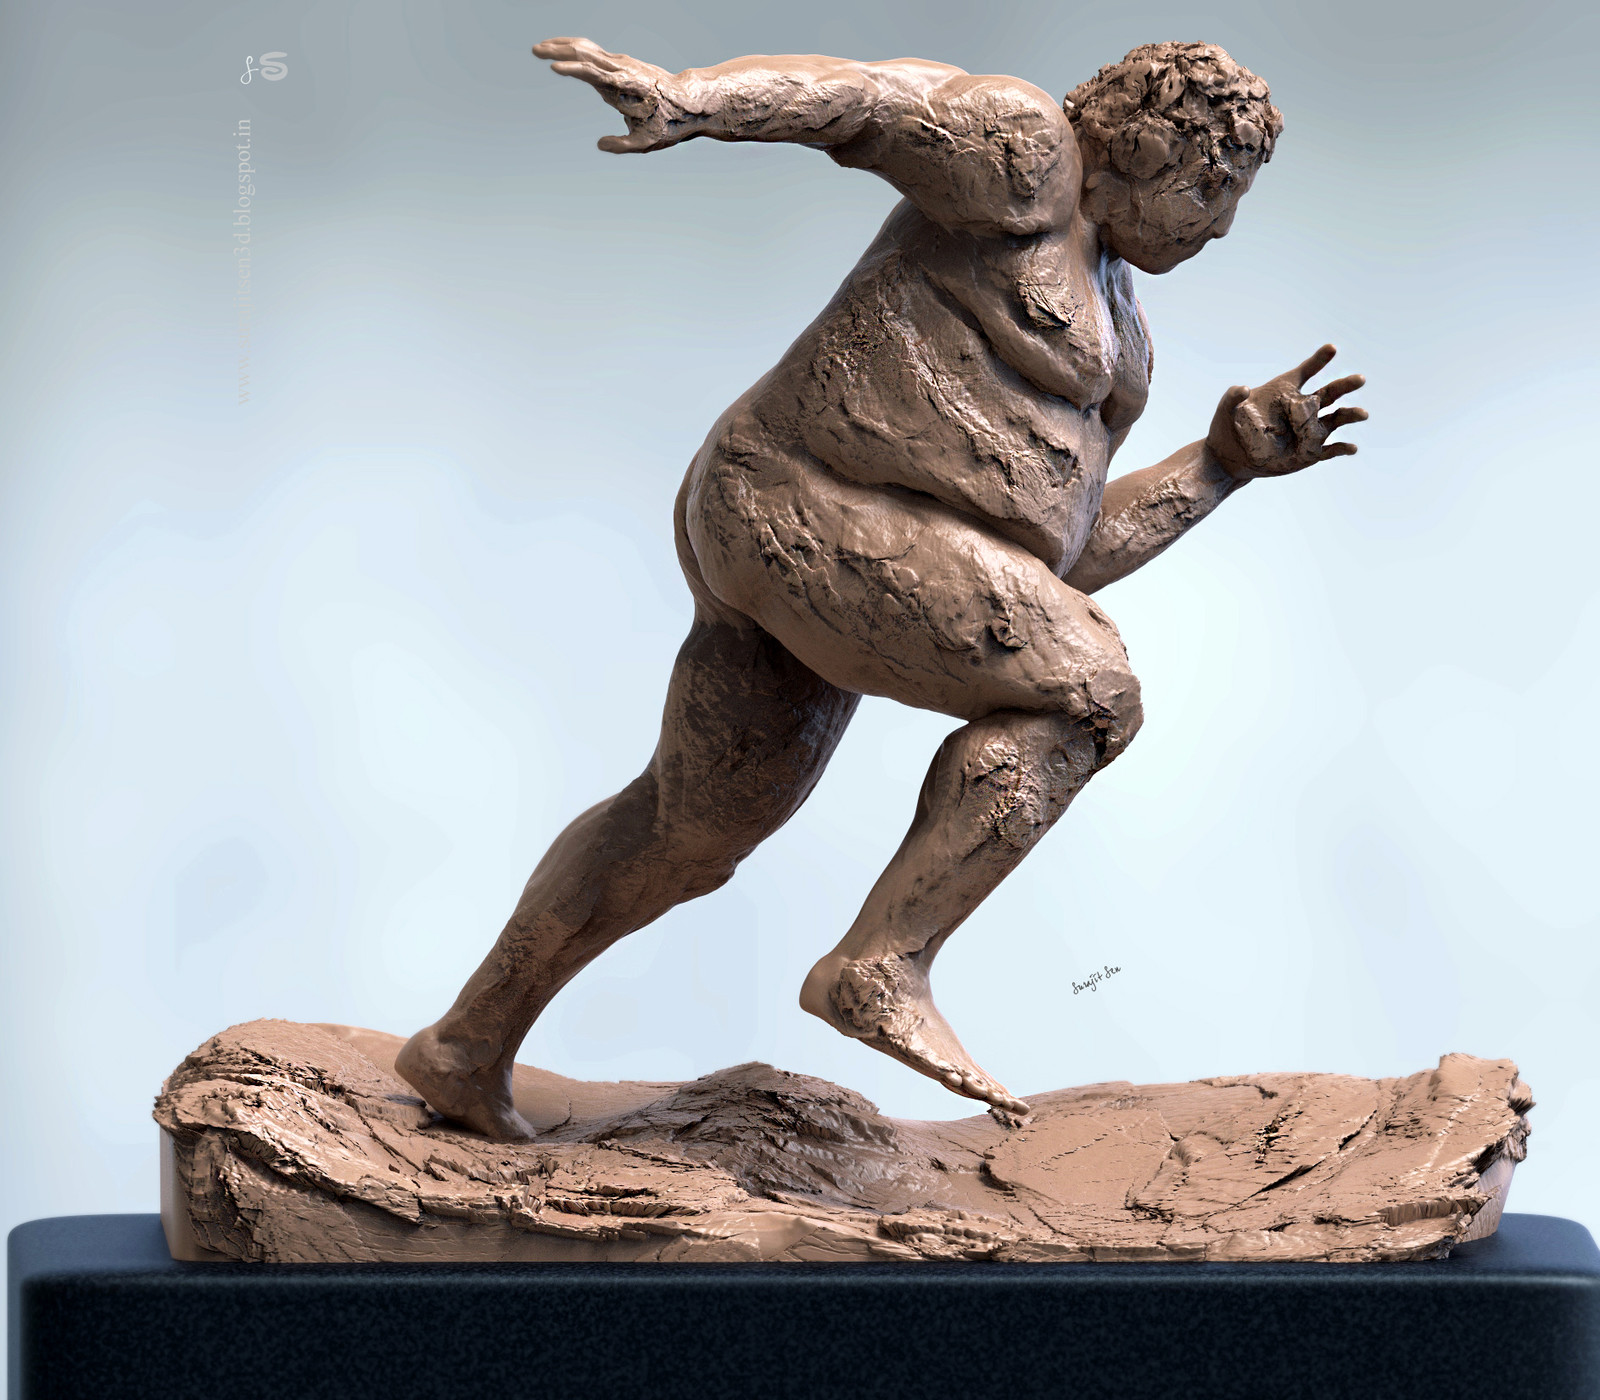 """#doodle #quicksculpt #study """"Running Fat man"""".....tried to make a form of my thoughts. Wish to share my quick digital sculpt."""